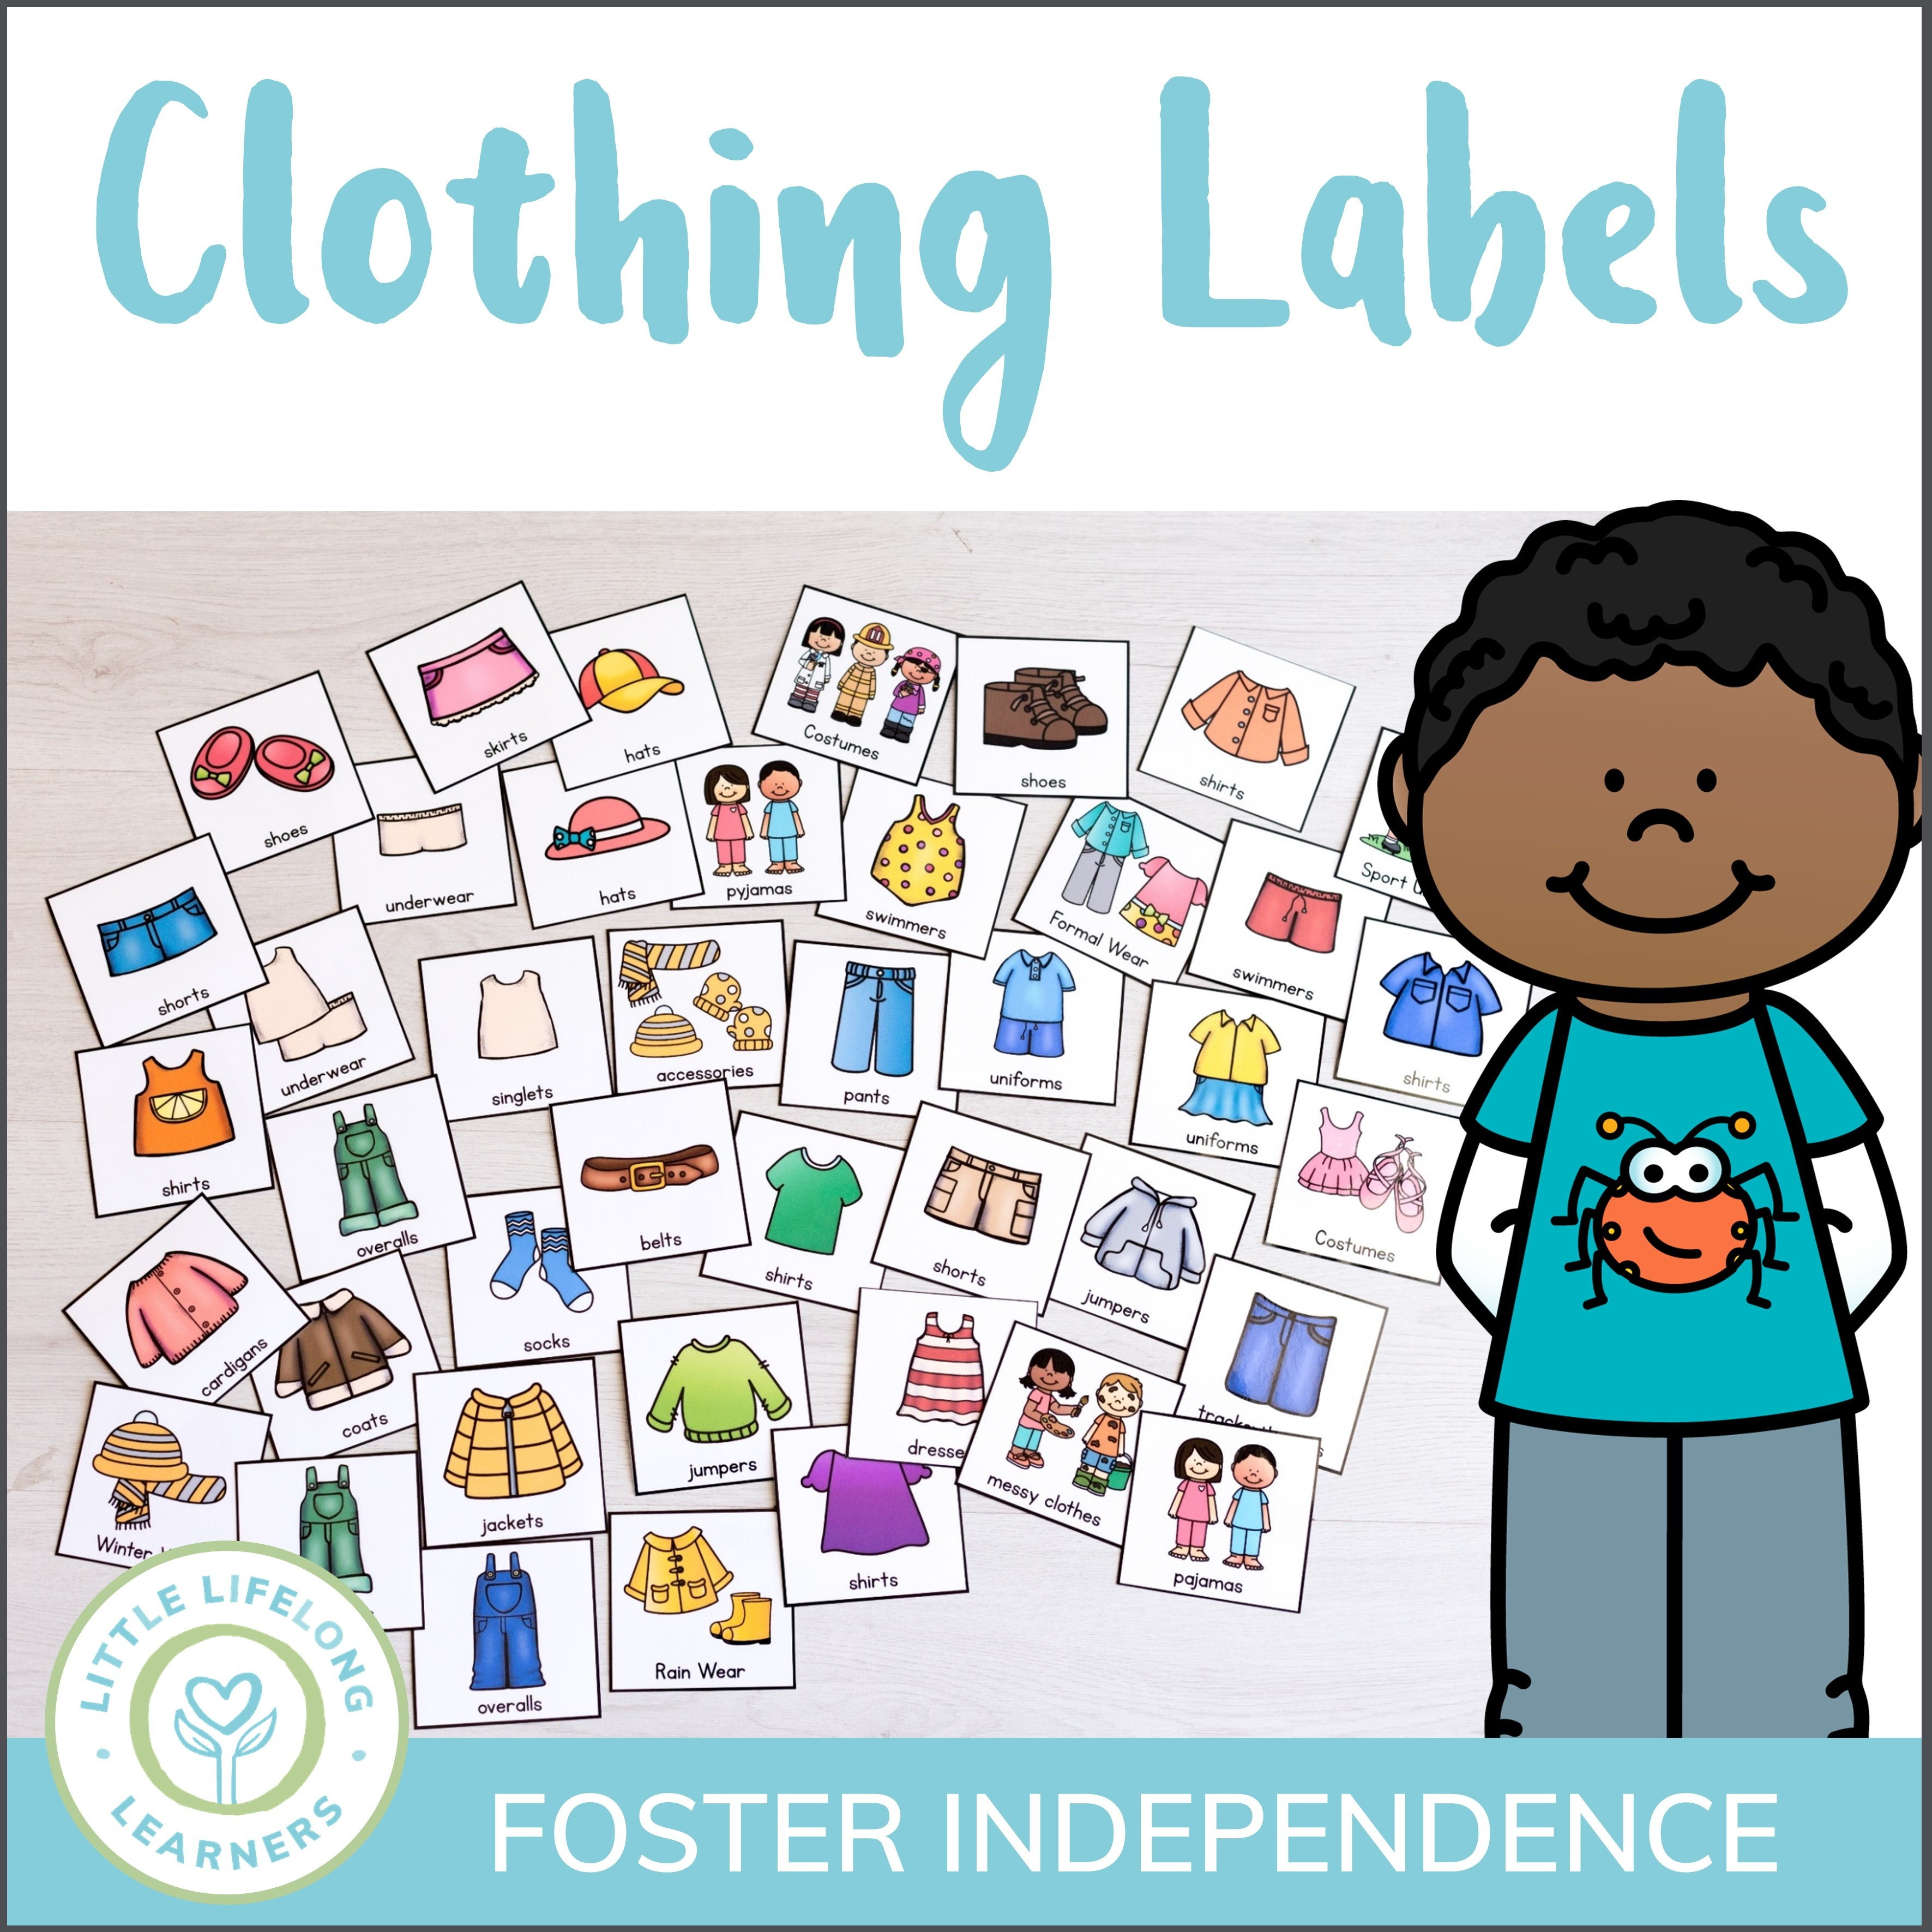 Kids Clothing Drawer Labels - Little Lifelong Learners - Free Printable Classroom Tray Labels